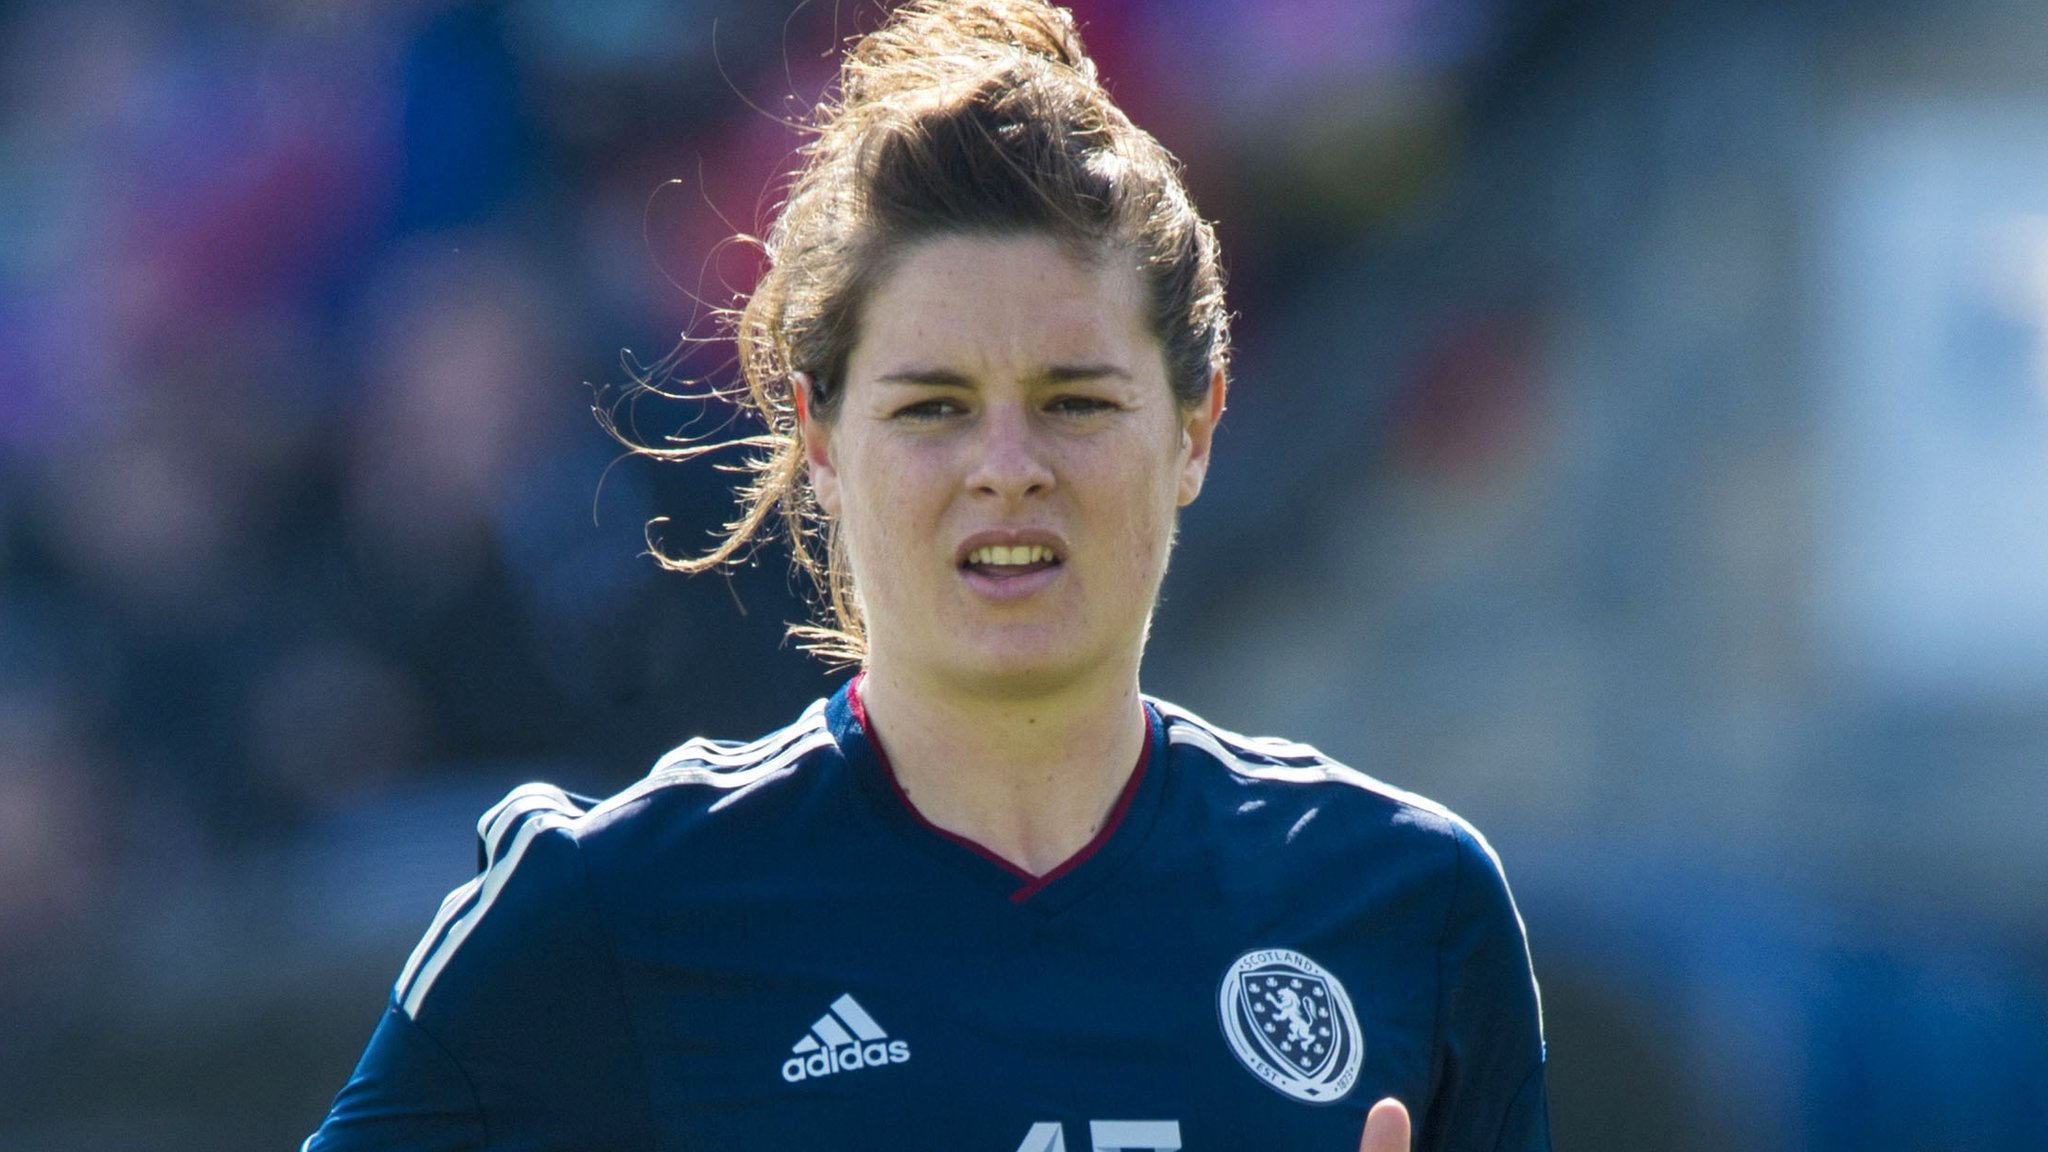 Scotland without injured Beattie for Women's Euro 2017